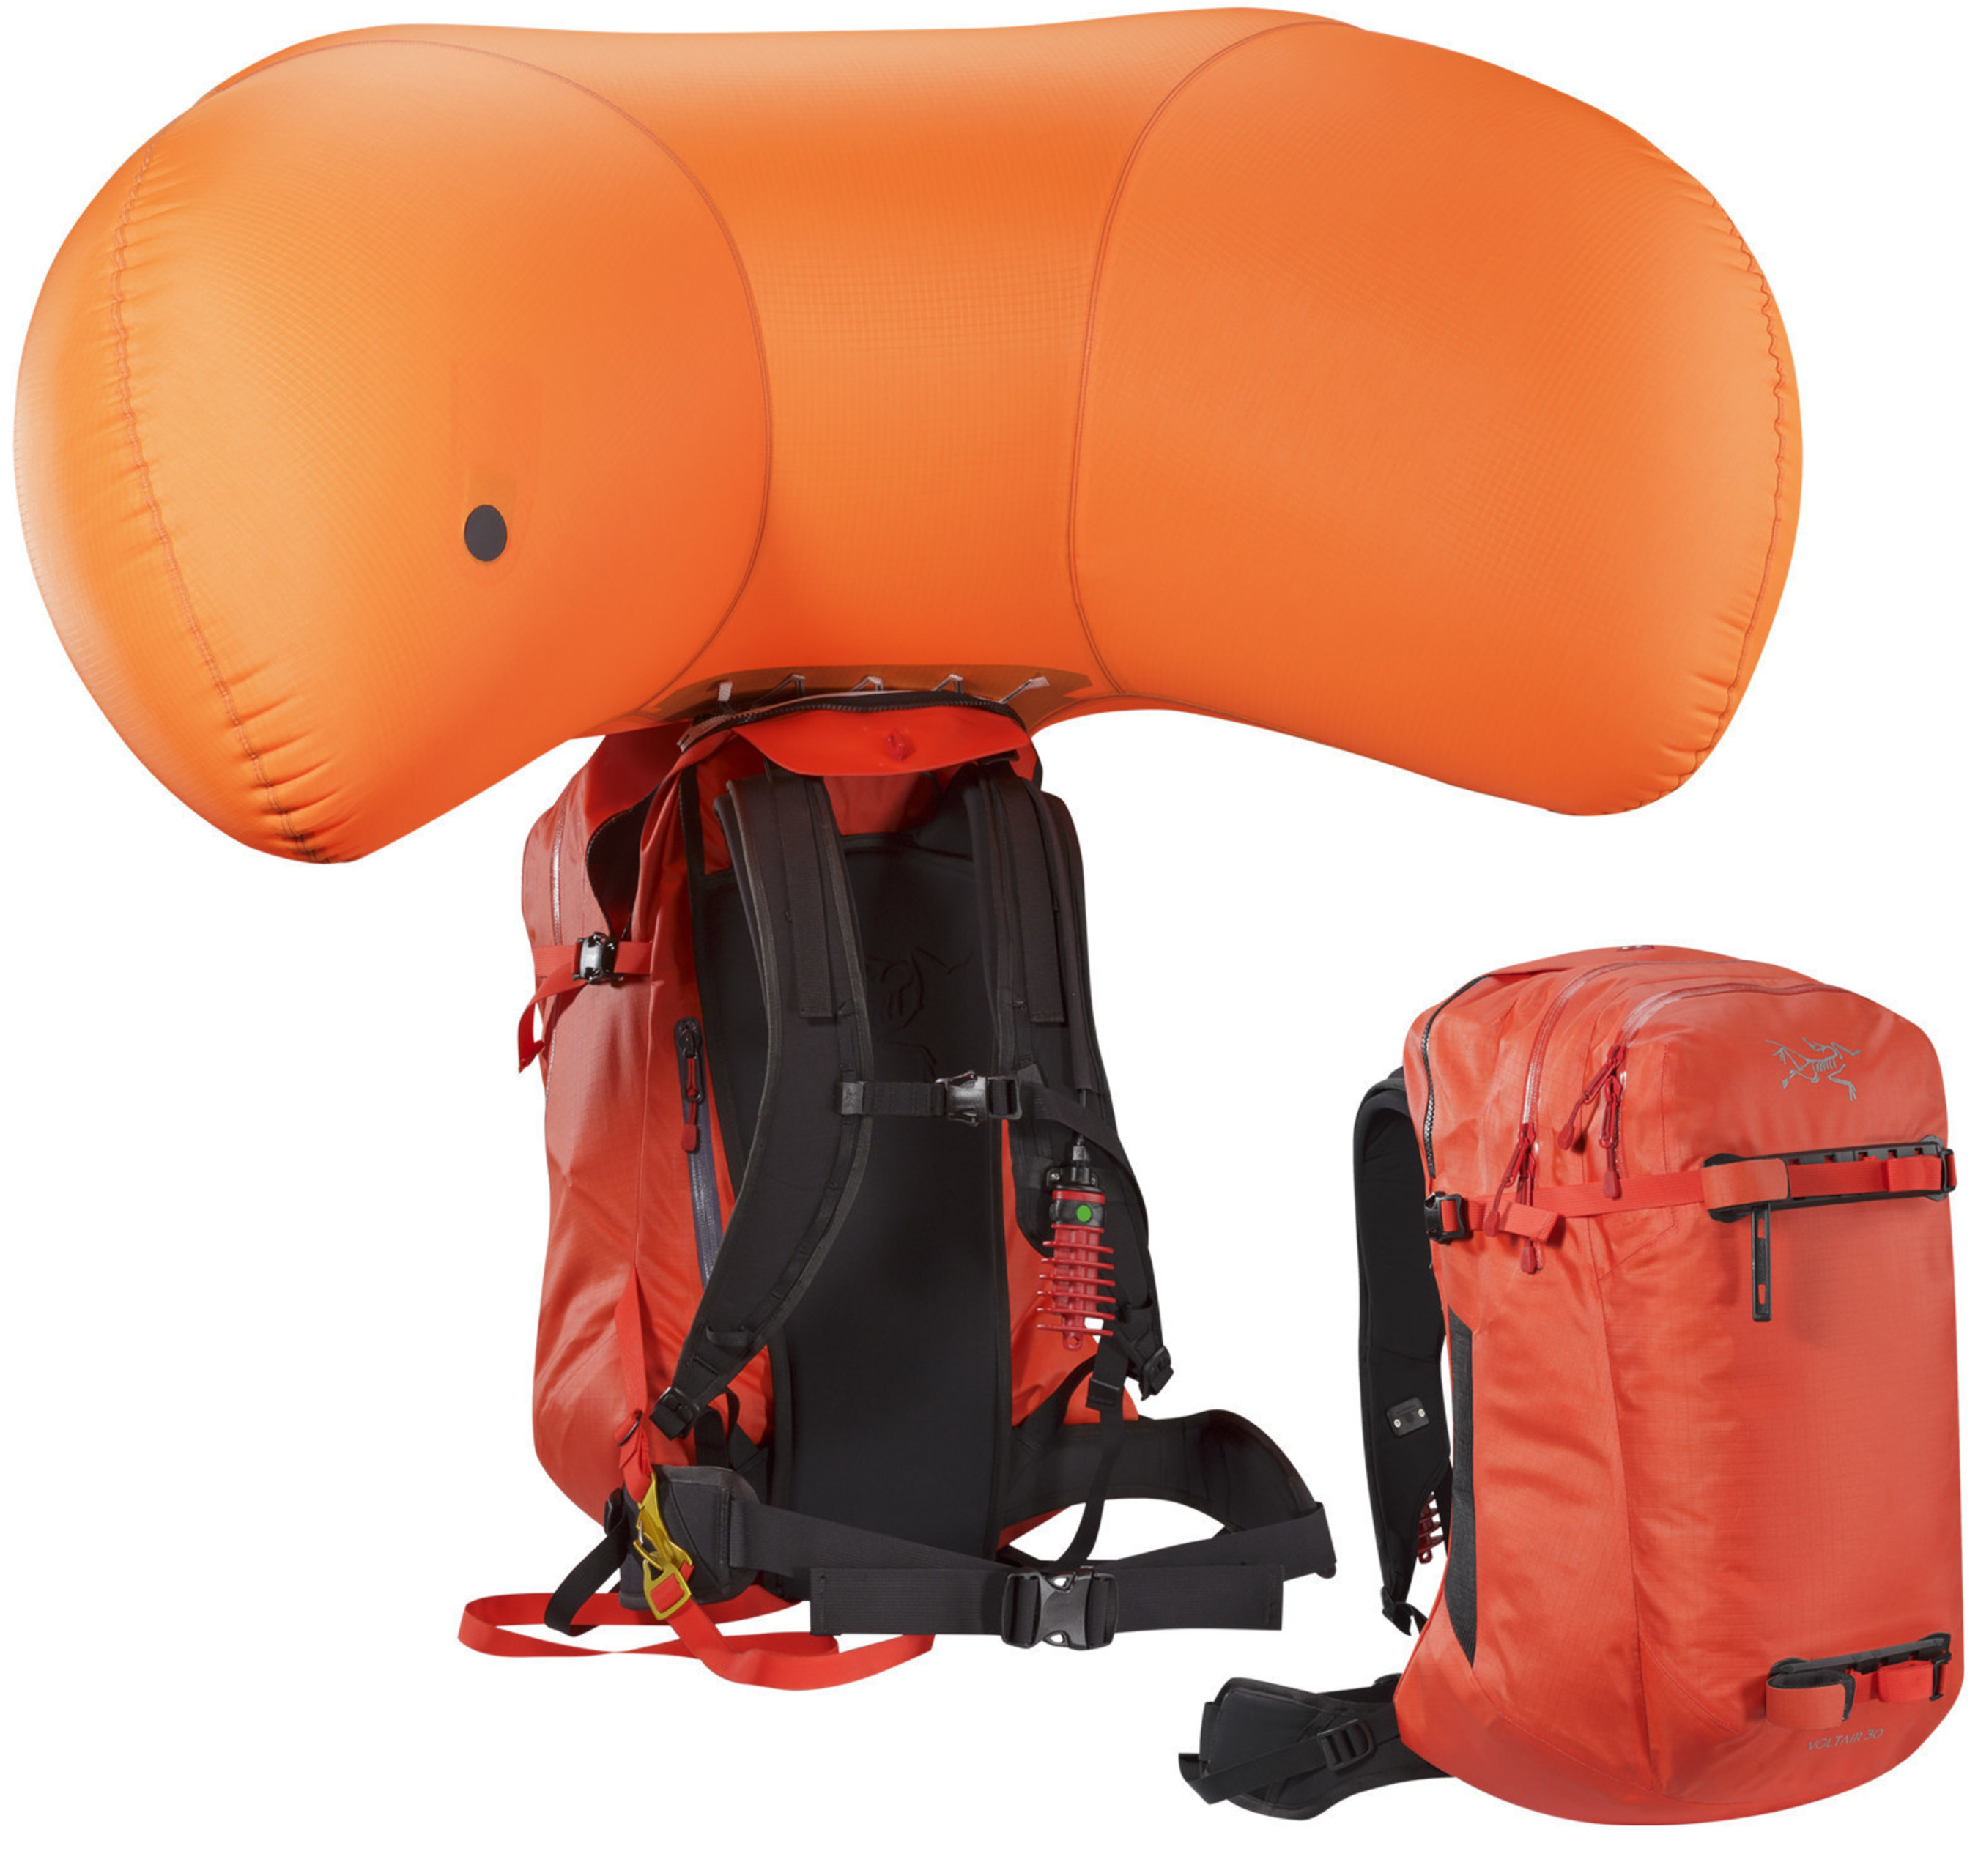 ARC'TERYX advances avalanche airbag technology with new Voltair